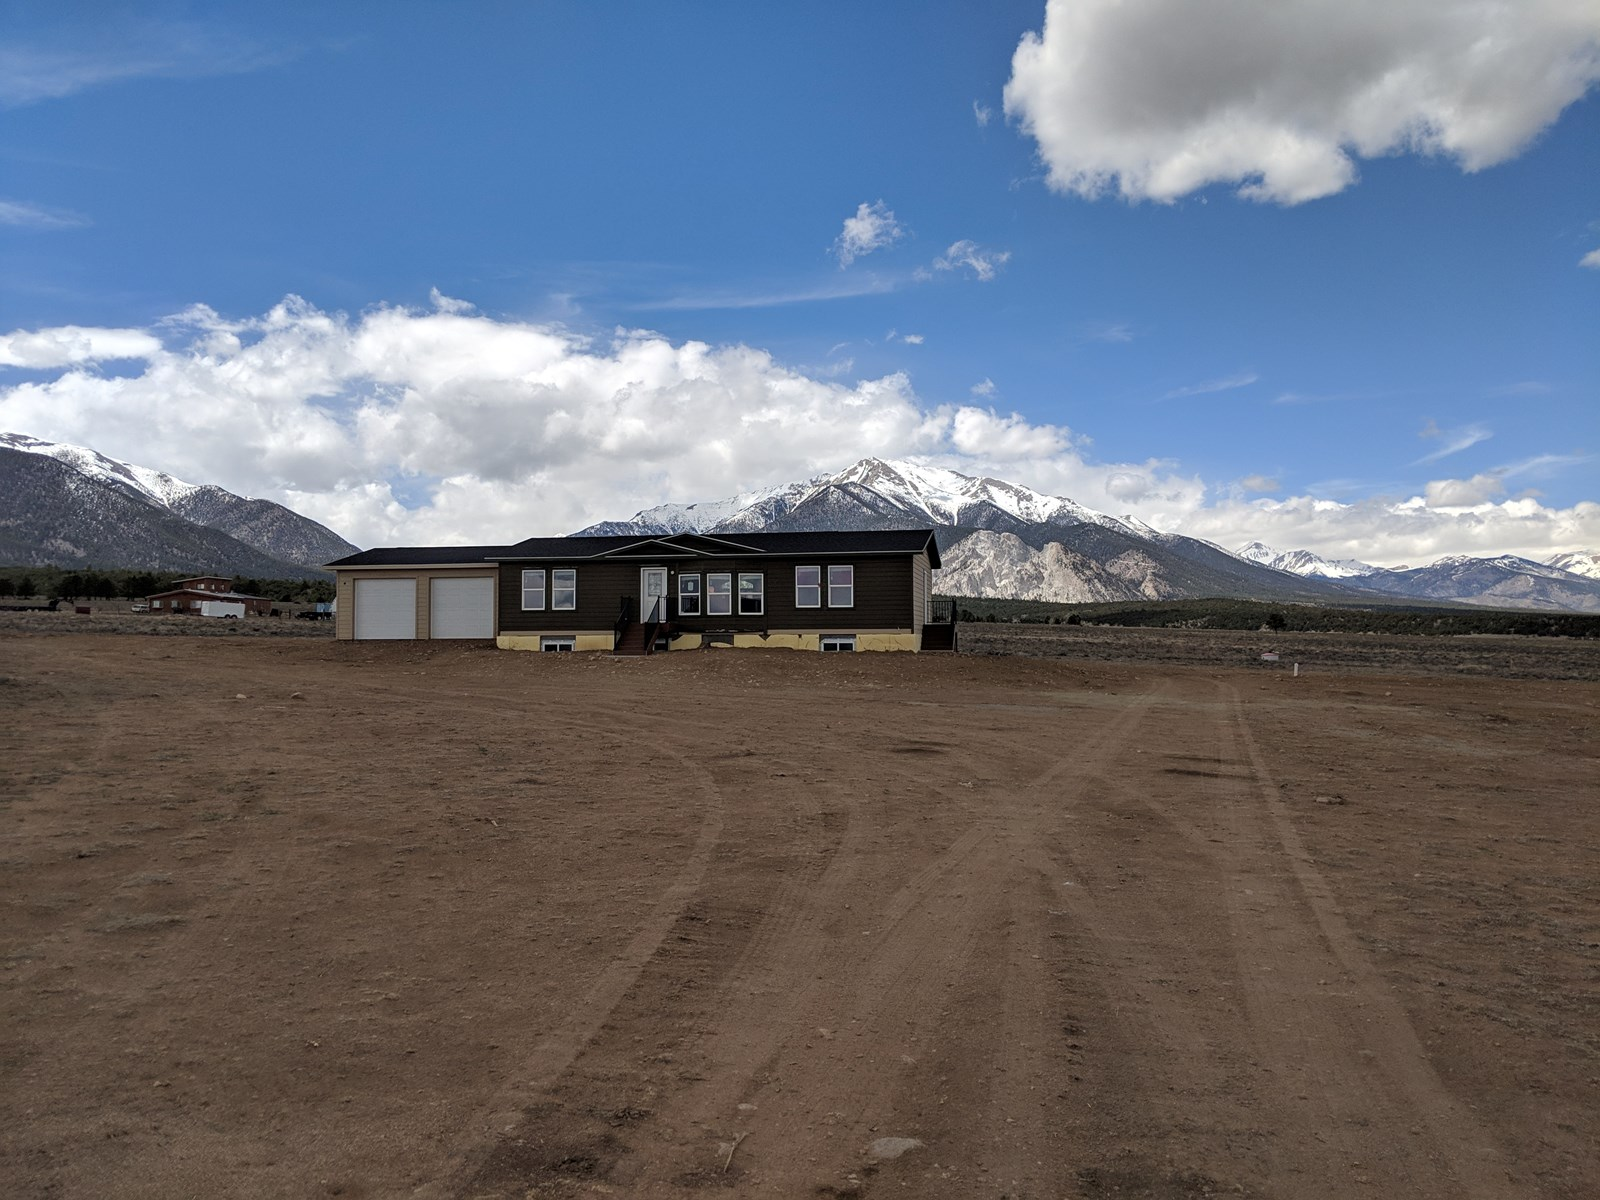 County Home Mountain Views New Home on Acreage in Colorado